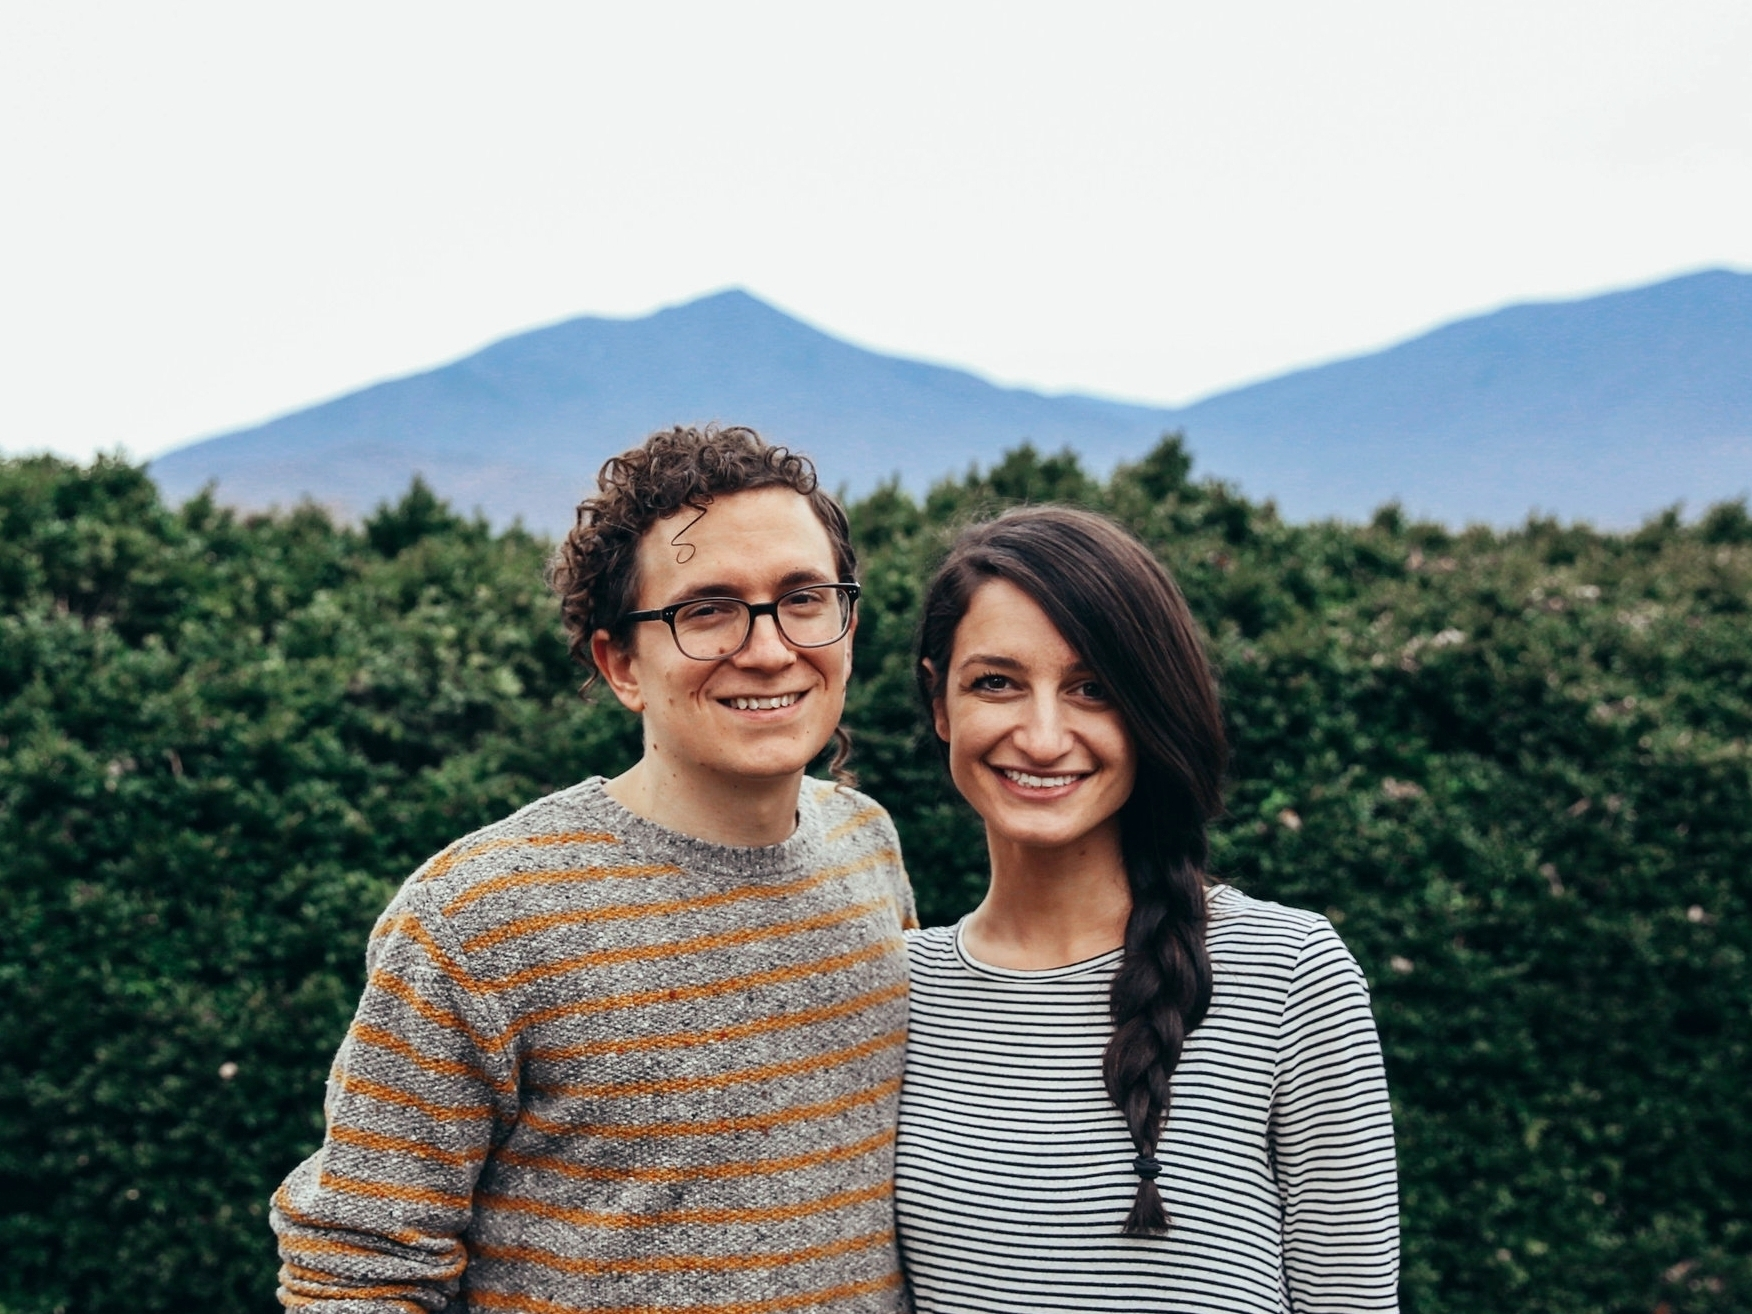 Timothy & Jillian Riordan - Hi! We are the Riordan Family. We have been married for almost 3 years. Timothy grew up in Georgia and Jillian grew up in Pennsylvania and we currently live in Virginia. We have always wanted to serve as a married couple for a year doing missions and we are so excited God has led us to England through Greater Europe Mission.